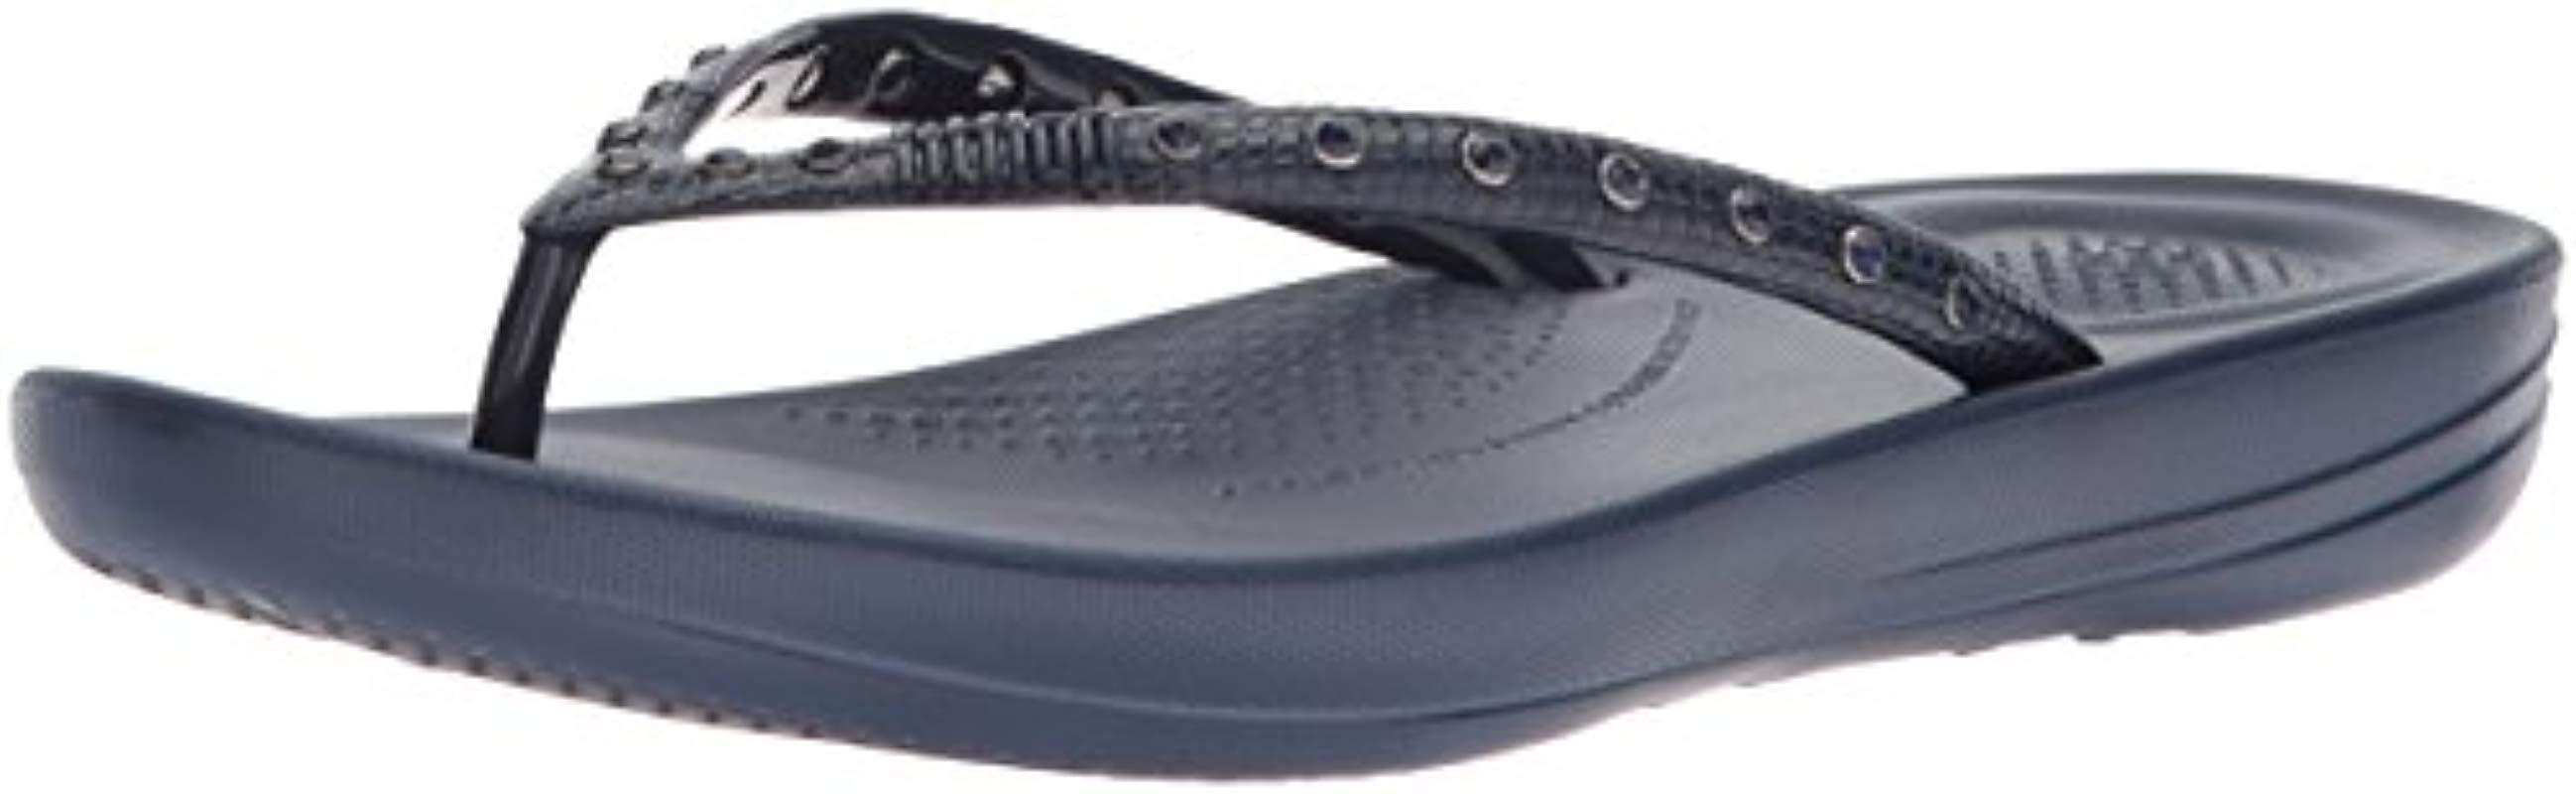 2a432c6829dc Lyst - Fitflop Iqushion Ergonomic Flip Flops-crystal Slide Sandal in ...